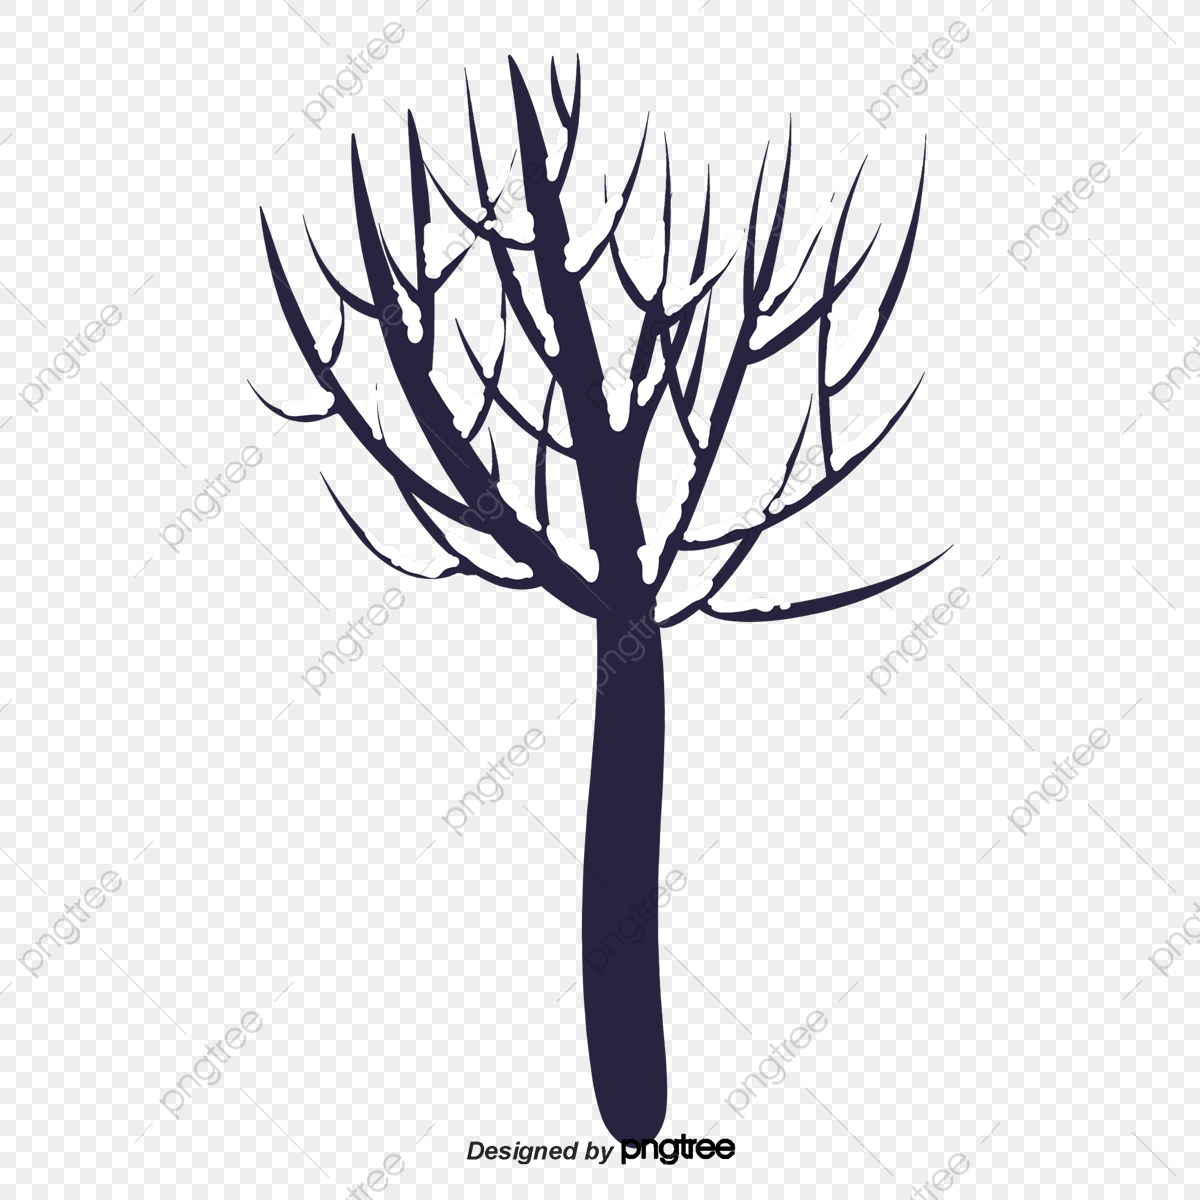 Cartoon Winter Snow Covered Dead Trees Winter Cartoon Scenes Png Transparent Clipart Image And Psd File For Free Download Christmas winter landscape banners vector. https pngtree com freepng cartoon winter snow covered dead trees 4280877 html